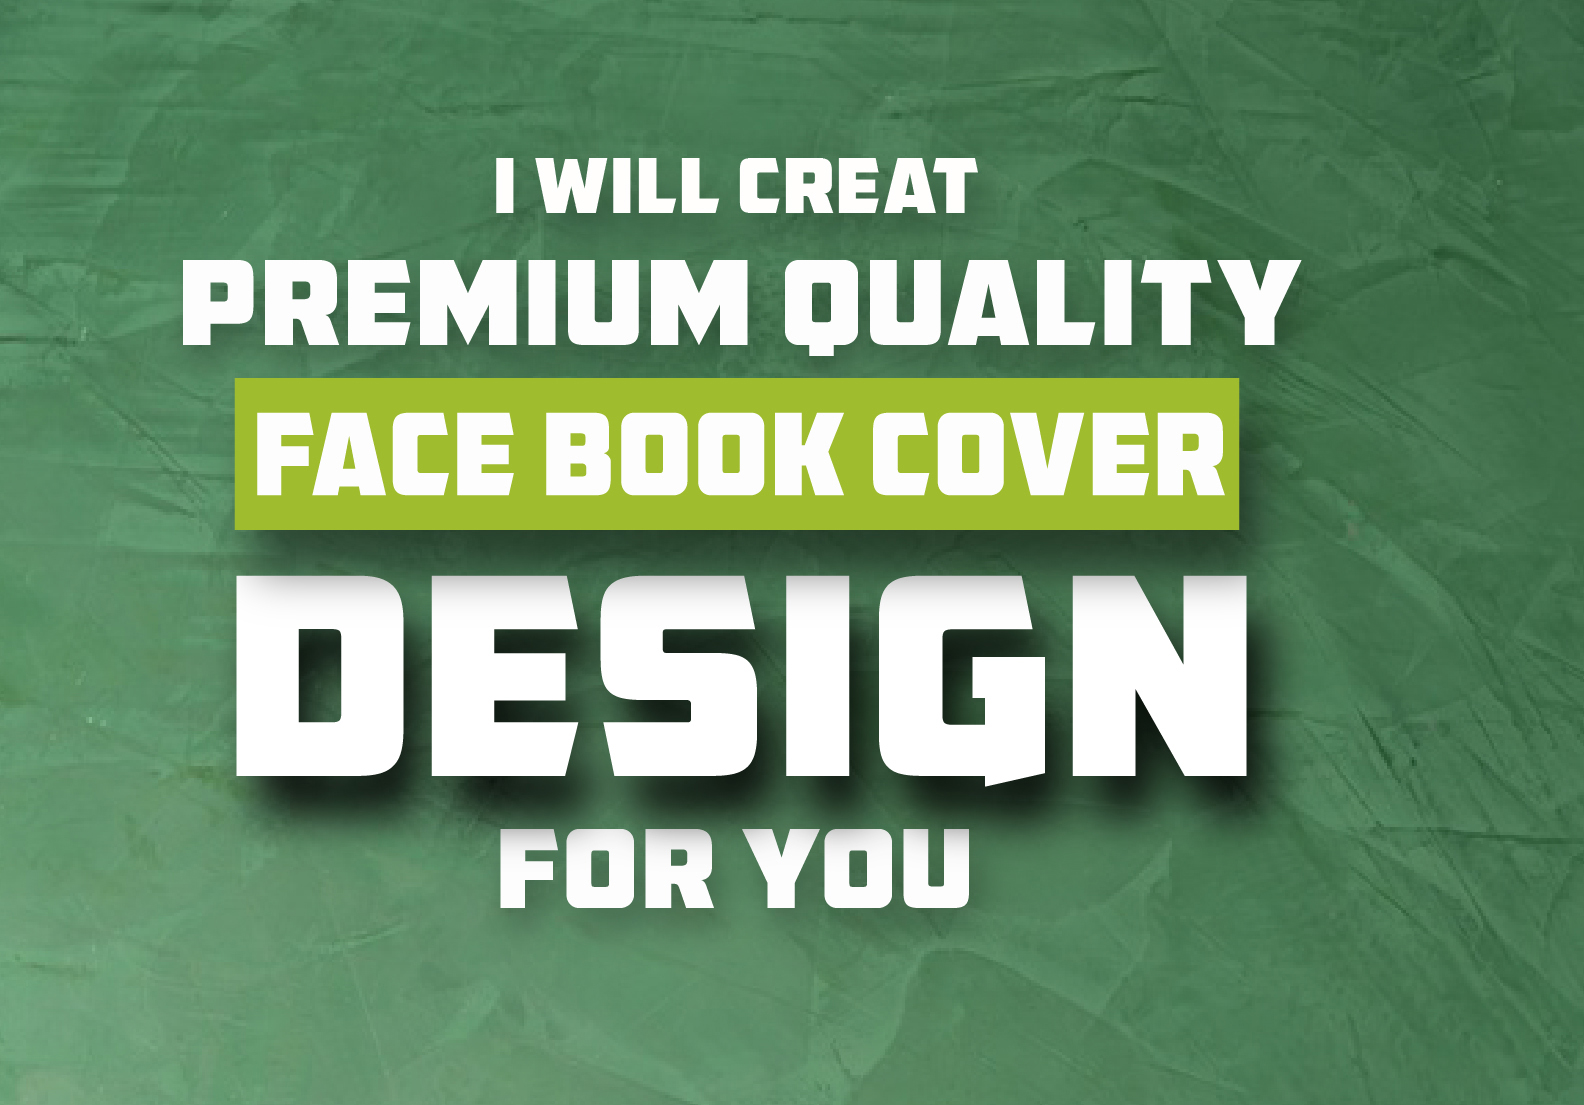 I will create Premium quality Facebook cover and post design for you.